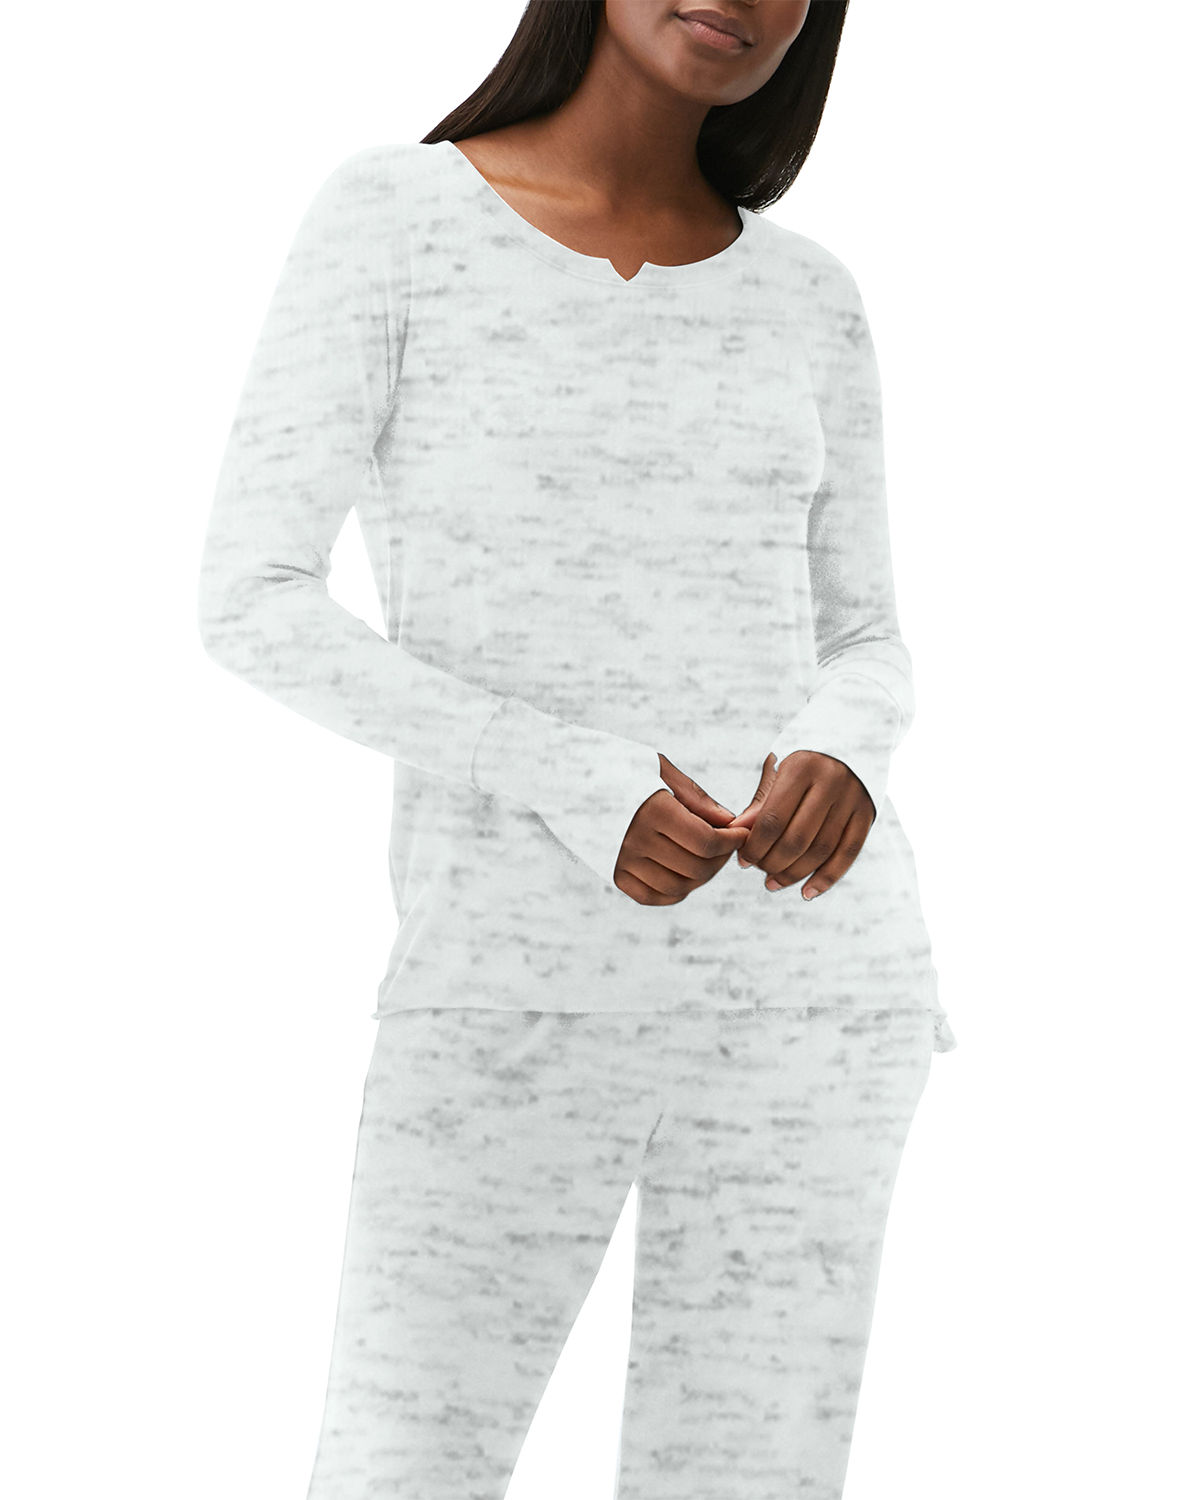 Notched-Neck Top w/ Thumbholes